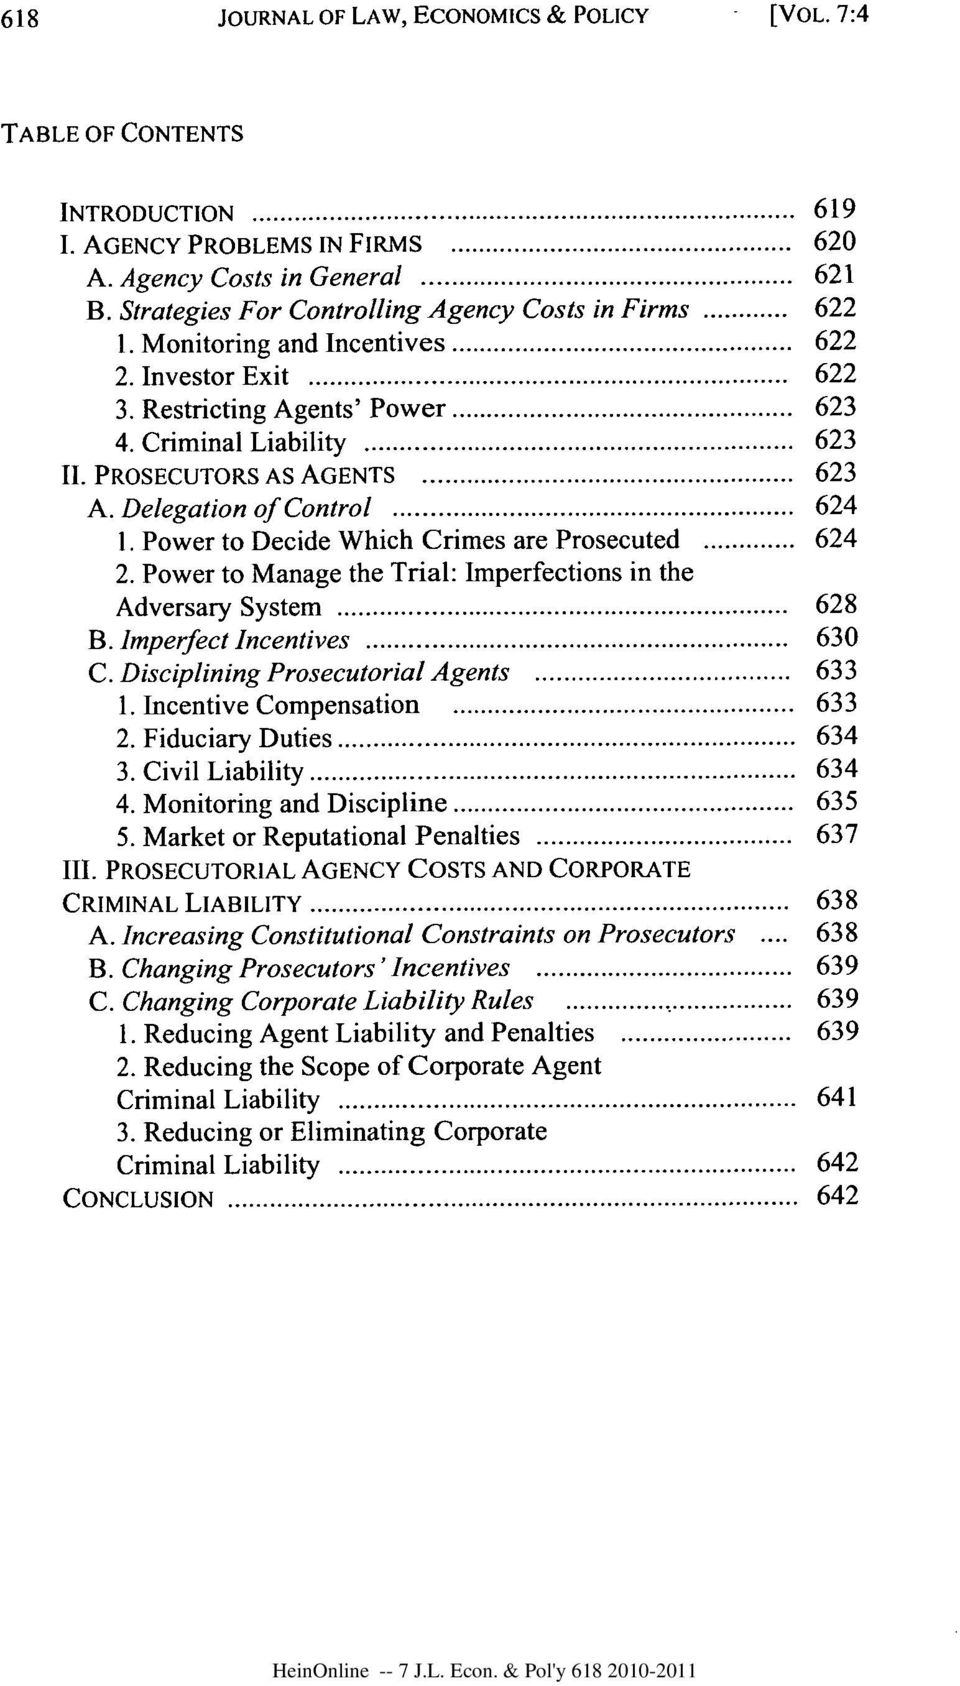 PROSECUTORS AS AGENTS...... 623 A. Delegation of Control... 624 1. Power to Decide Which Crimes are Prosecuted... 624 2. Power to Manage the Trial: Imperfections in the Adversary System...... 628 B.